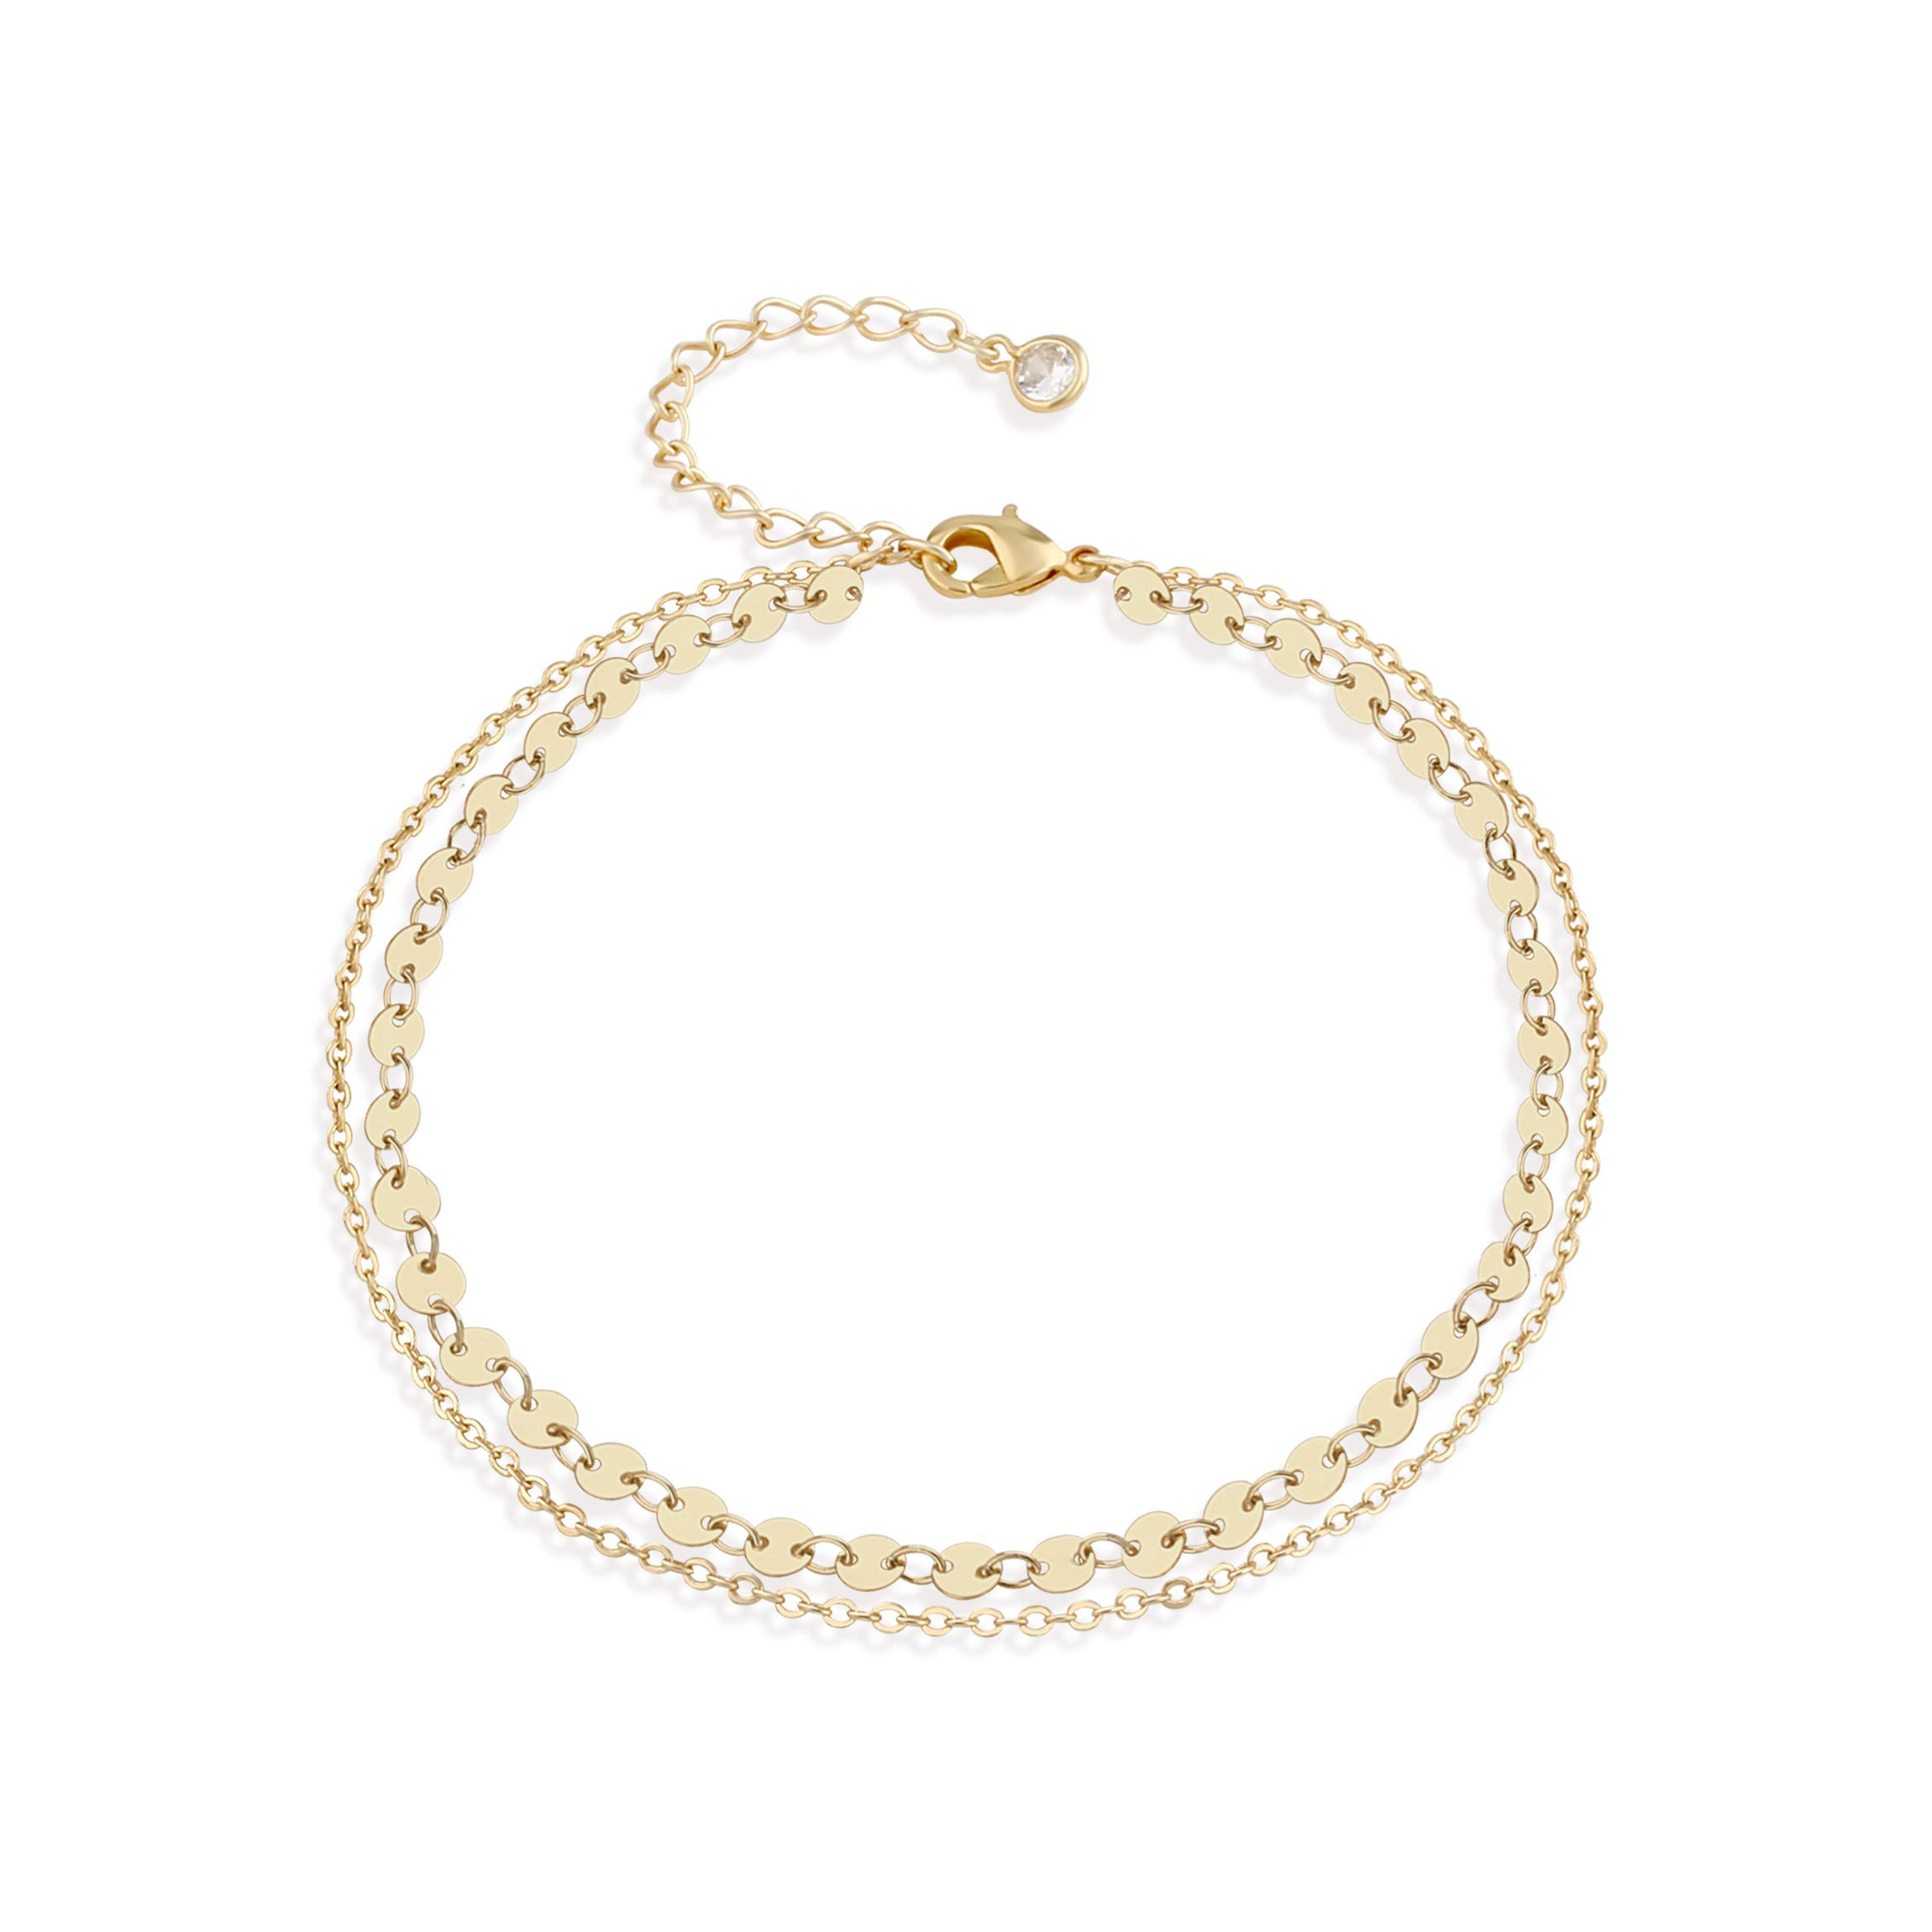 Dainty Gold Coin Chain Anklet,Double Layer 14K Gold Plated Disc Chain Ankle Bracelets for Women